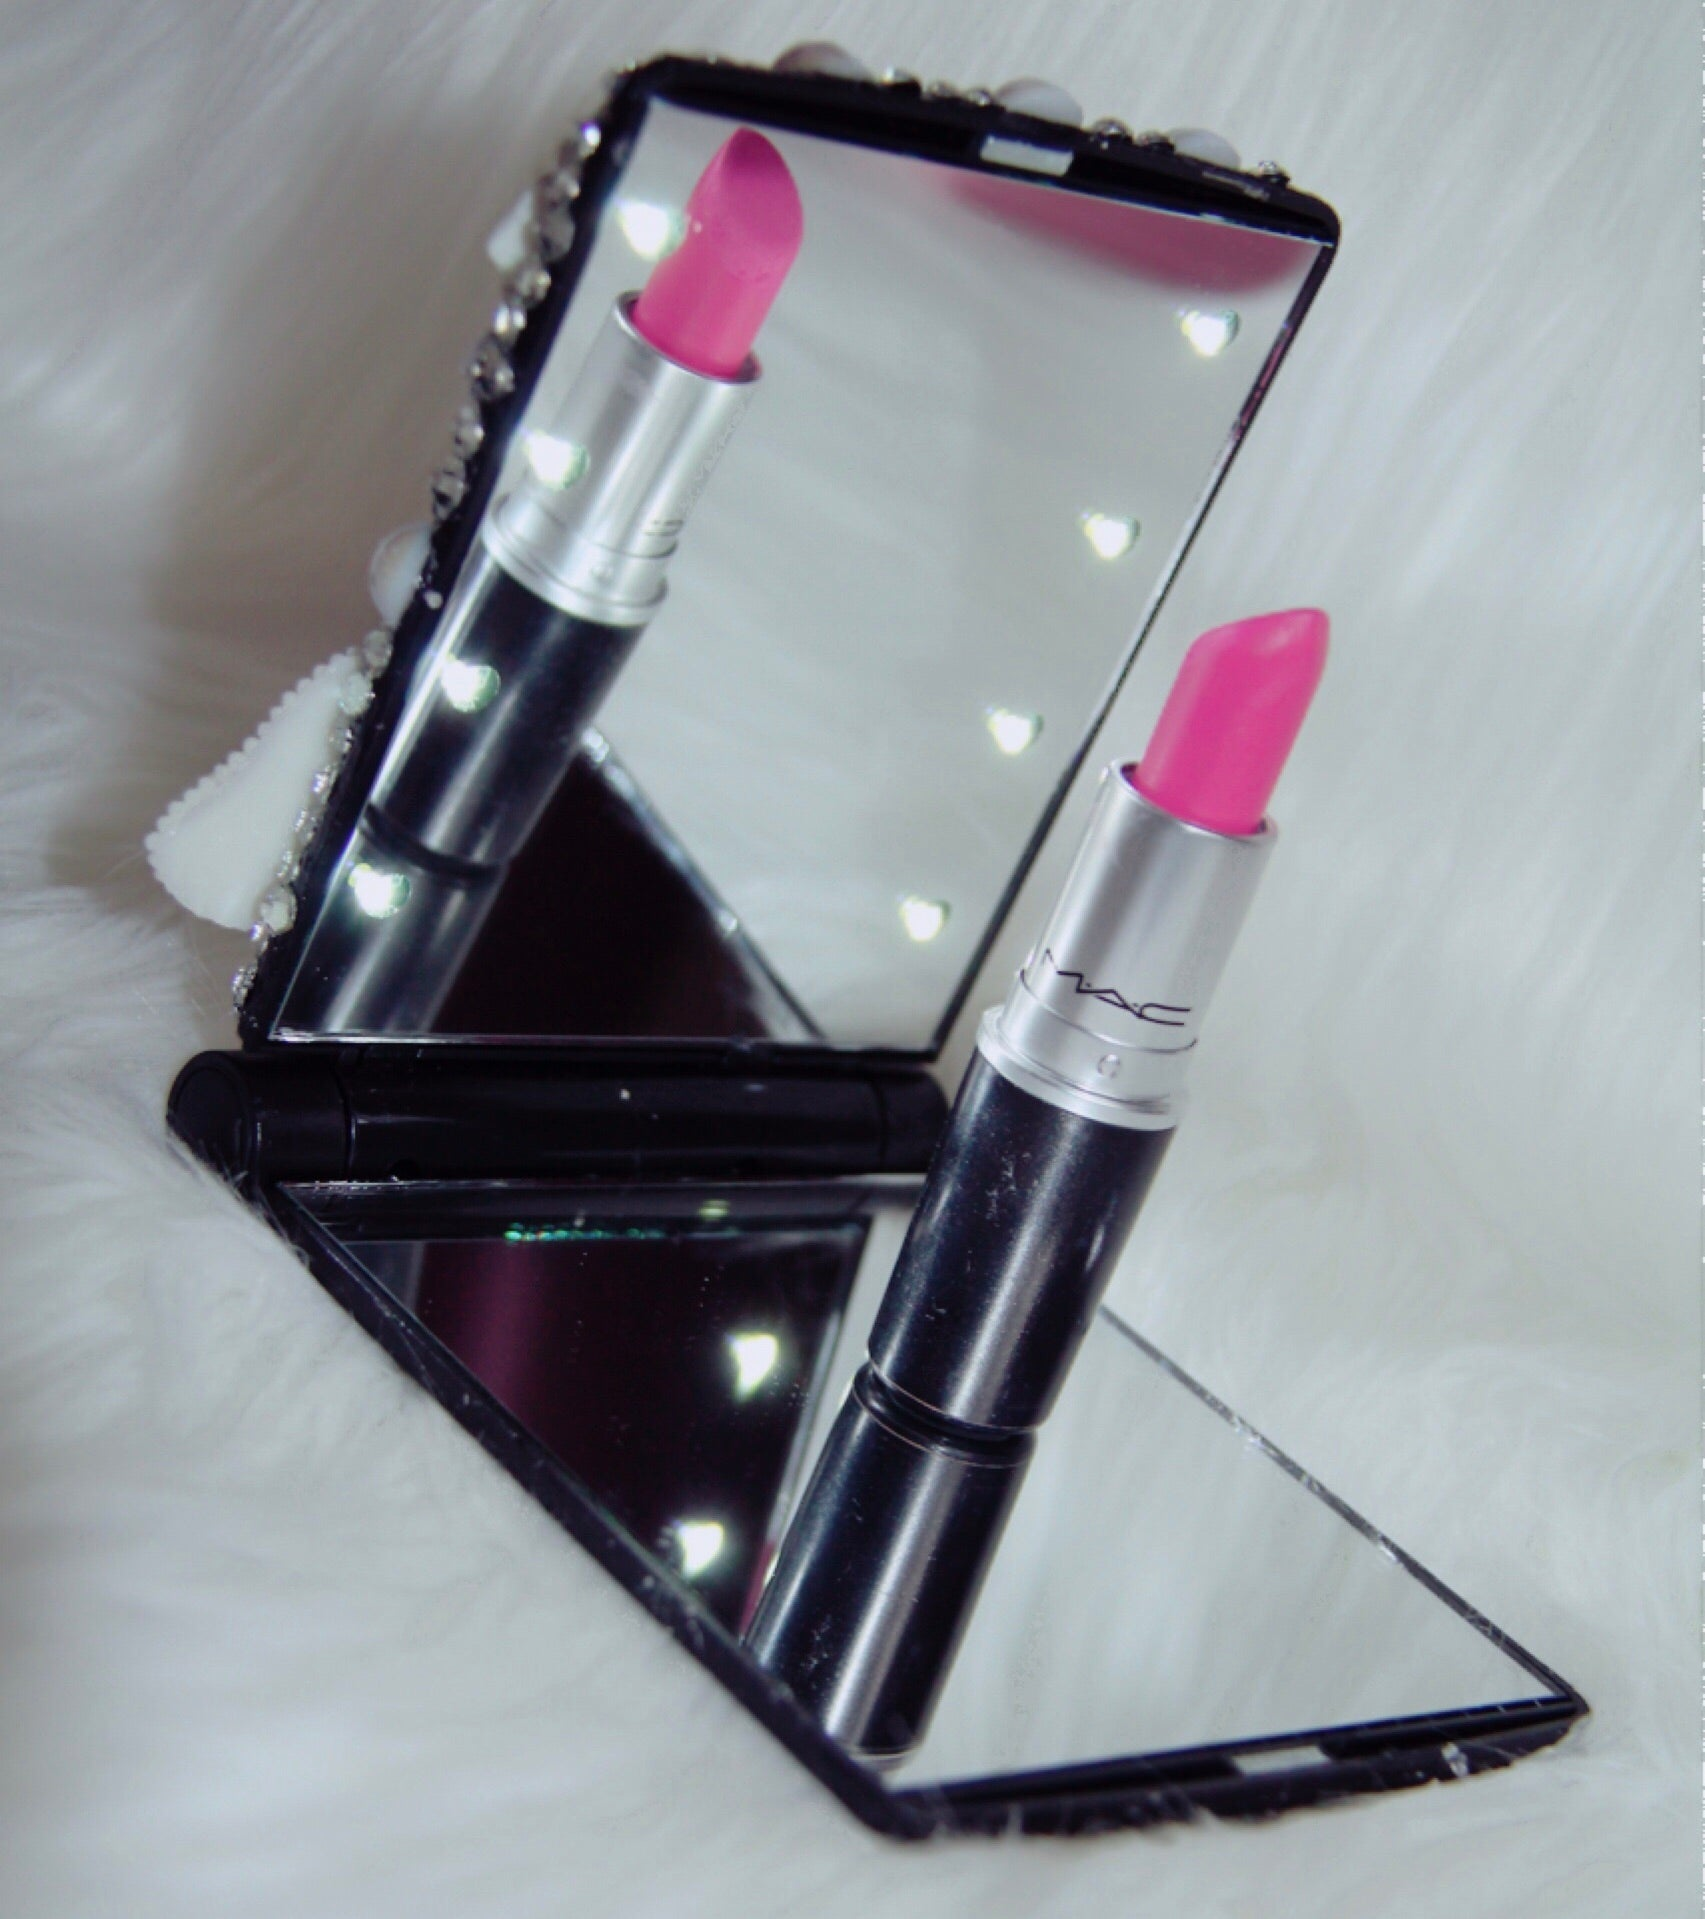 Marylin Monroe lipstick light up mirror